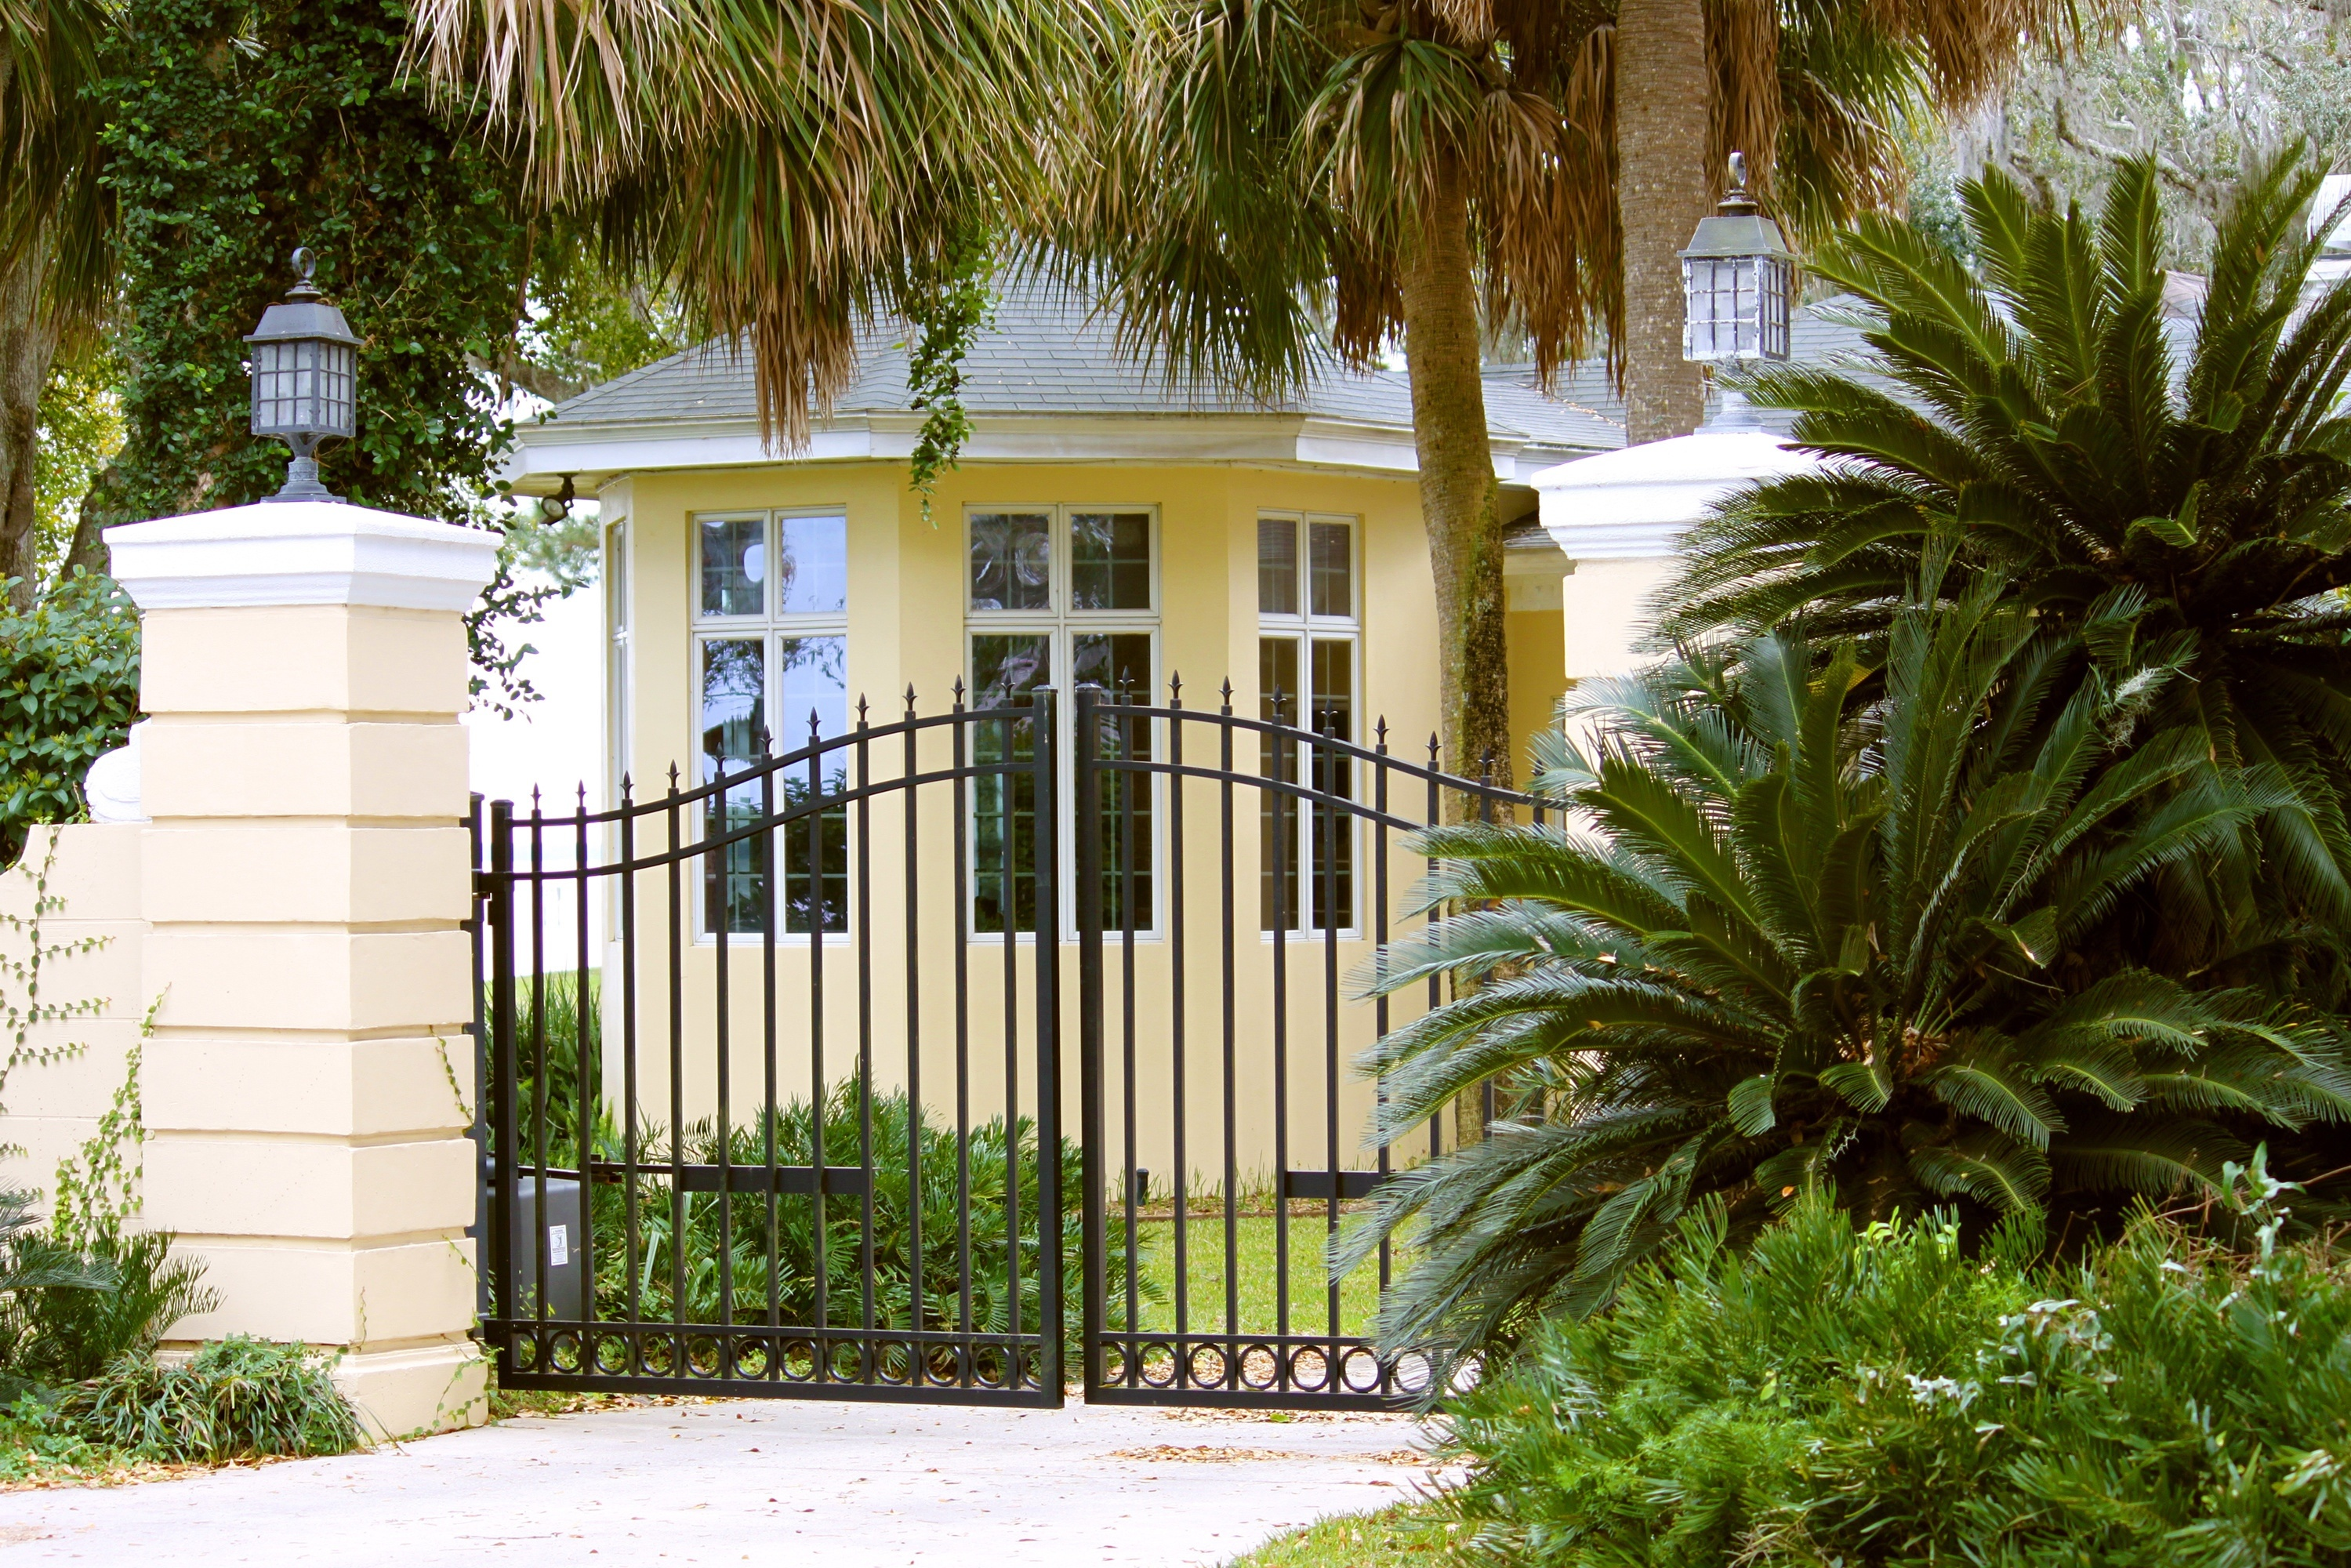 real_estate_gated_home_palms_rx.jpg